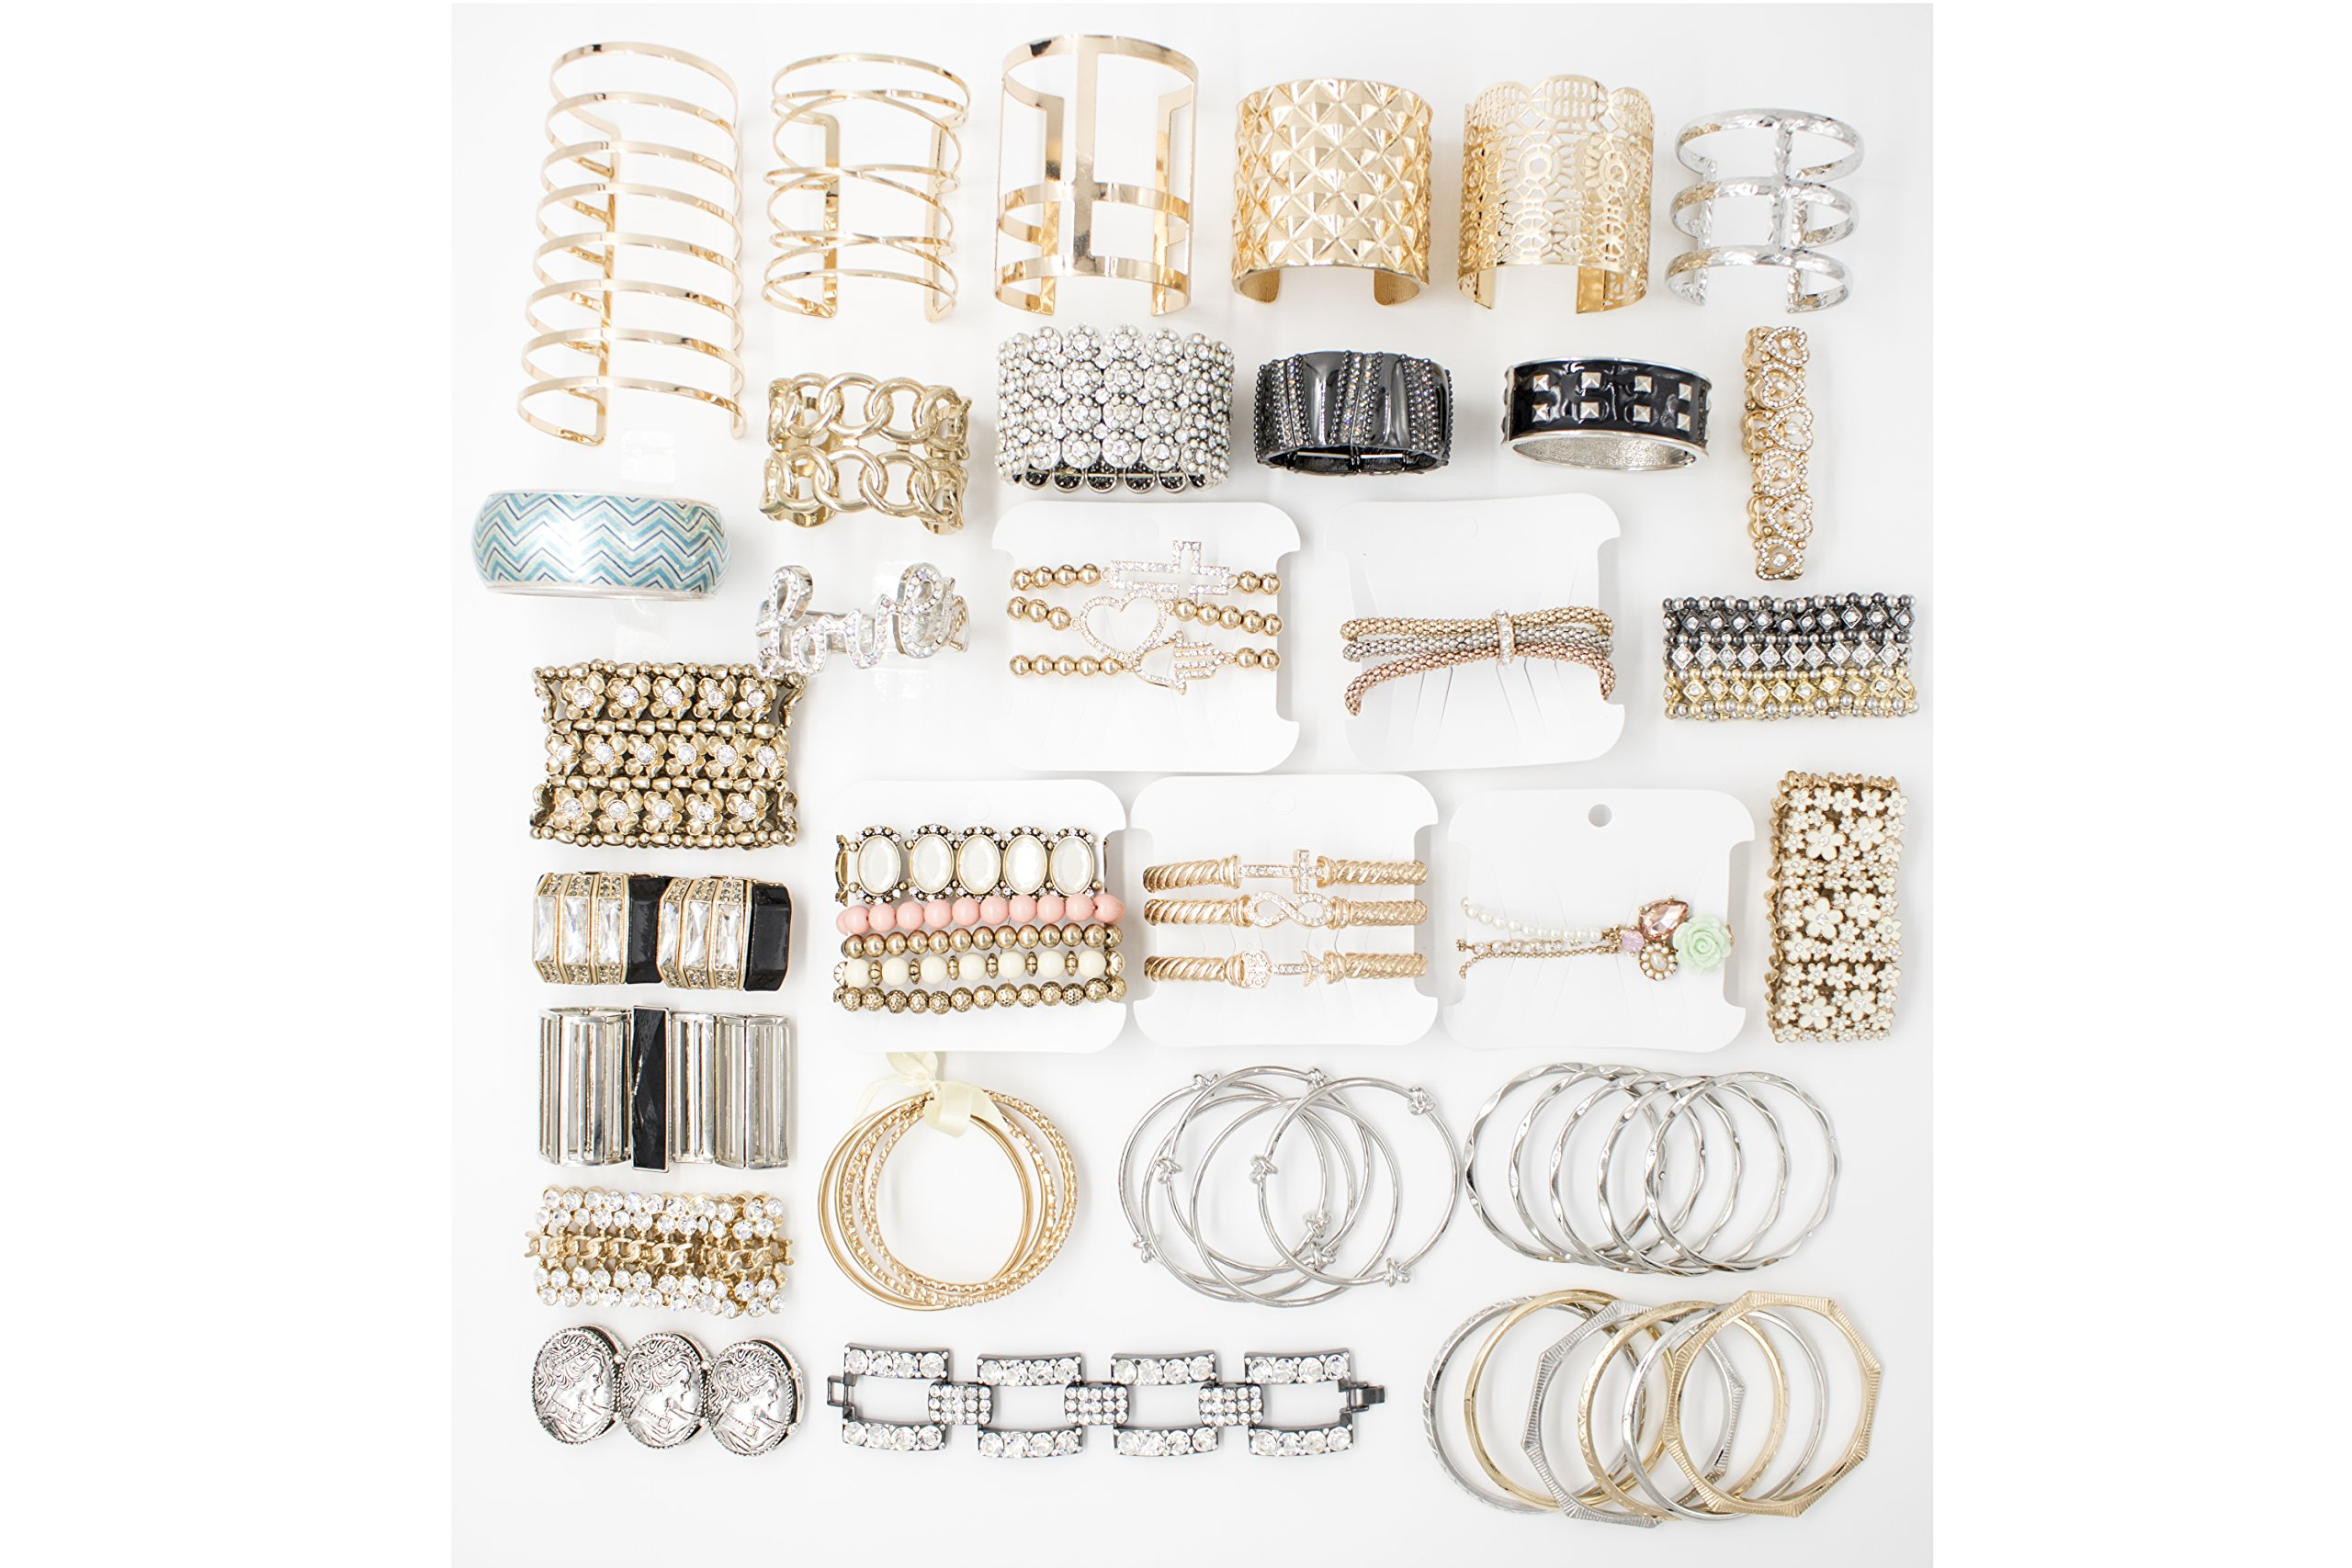 Choice by Choi Fashion Jewelry Assorted Gold & Silver, Bulk for Wholesale, Assorted Bracelet, Necklace, Earrings, Rings & Strand made of Zinc, Steel, Brass by (100 PCS Assorted) by Choice by Choi (Image #5)